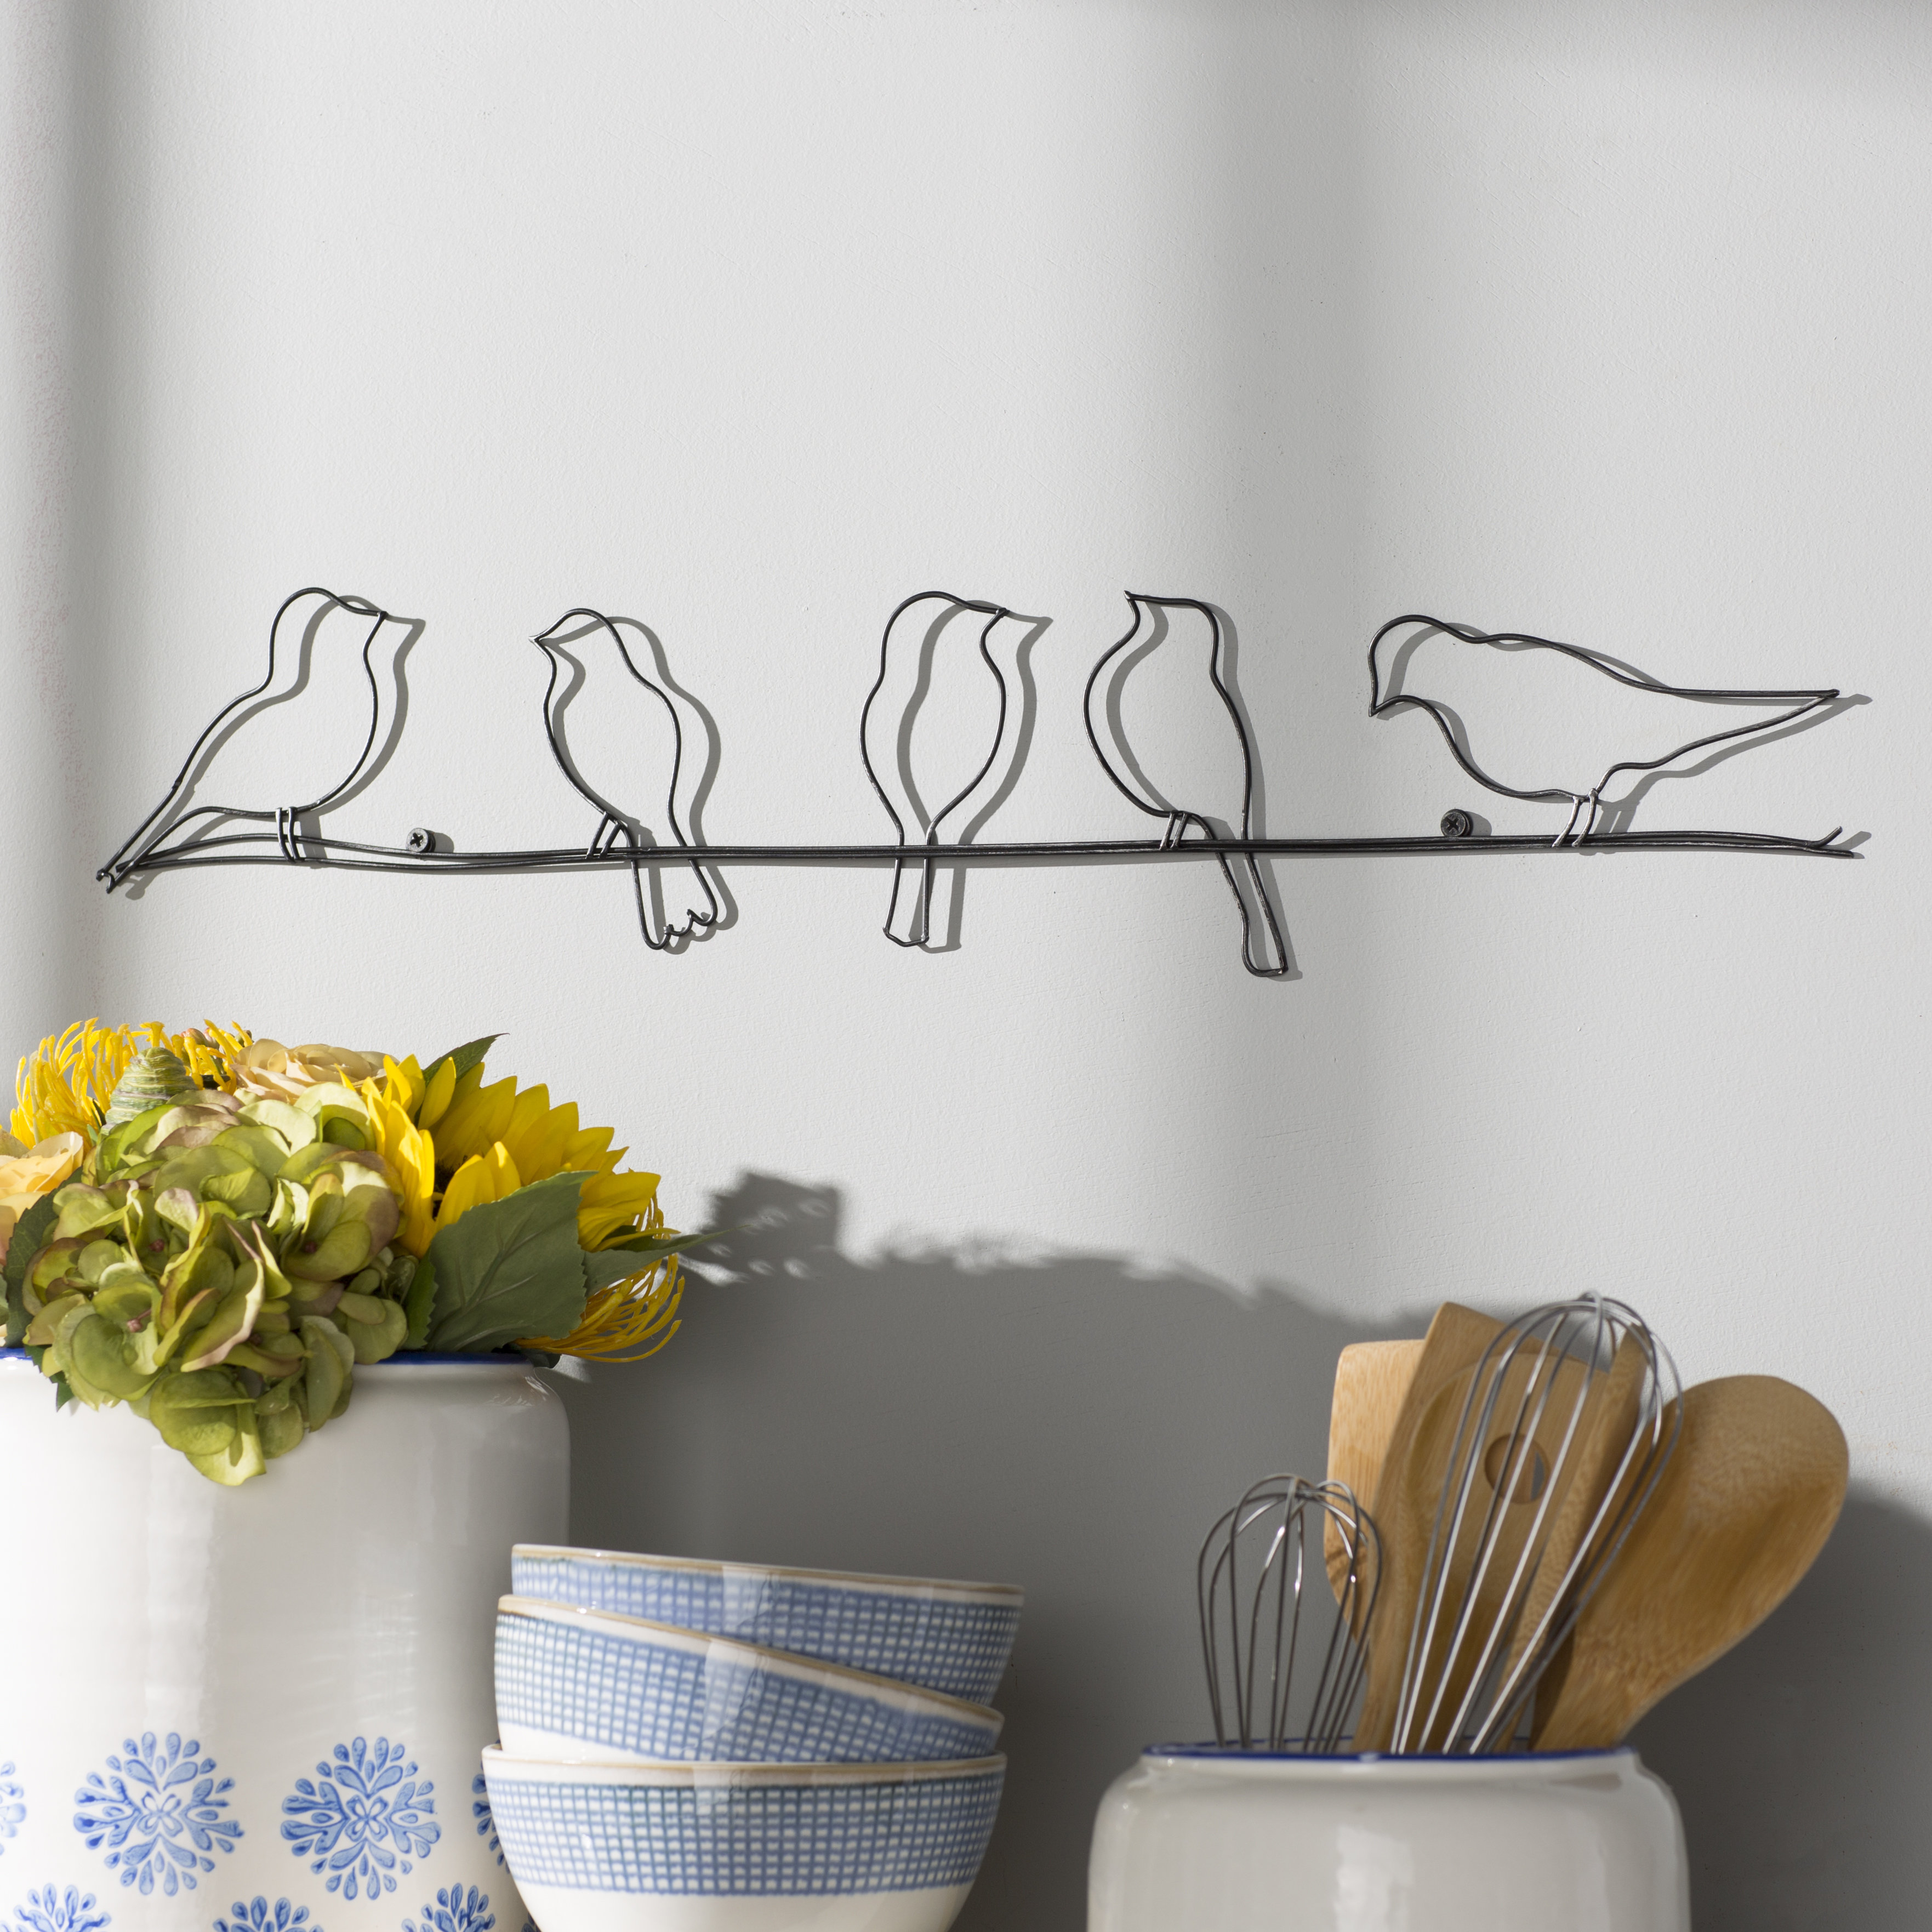 2020 Desford Leaf Wall Decor In Rioux Birds On A Wire Wall Décor & Reviews (Gallery 8 of 20)